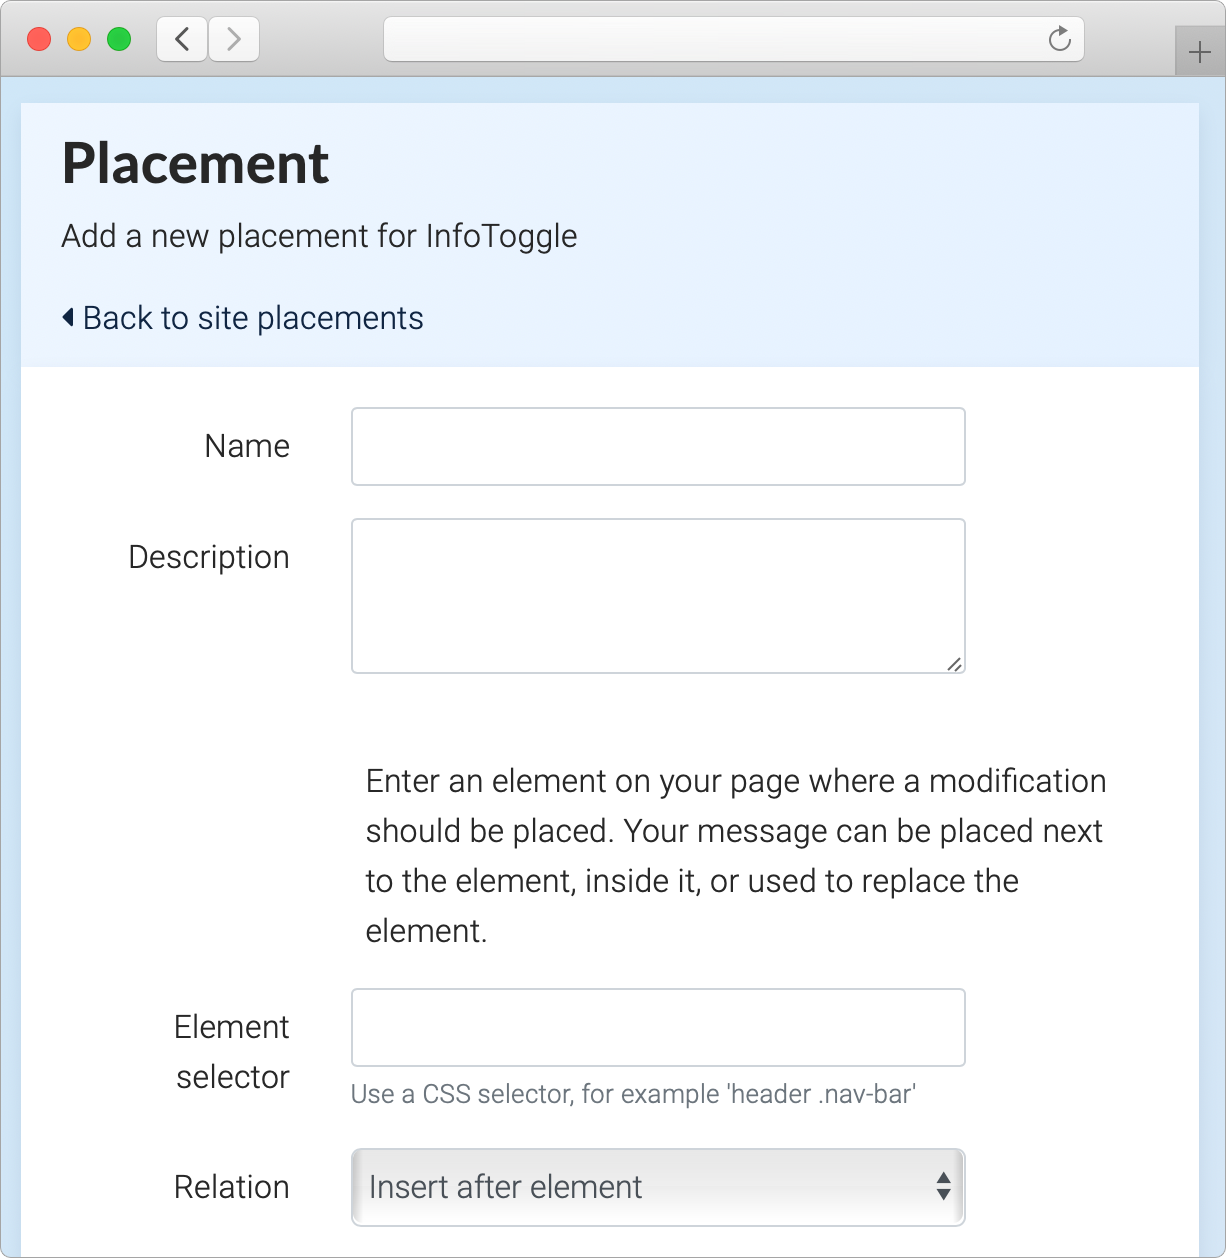 Placement settings window displaying name, description, element         selector, and relation settings.